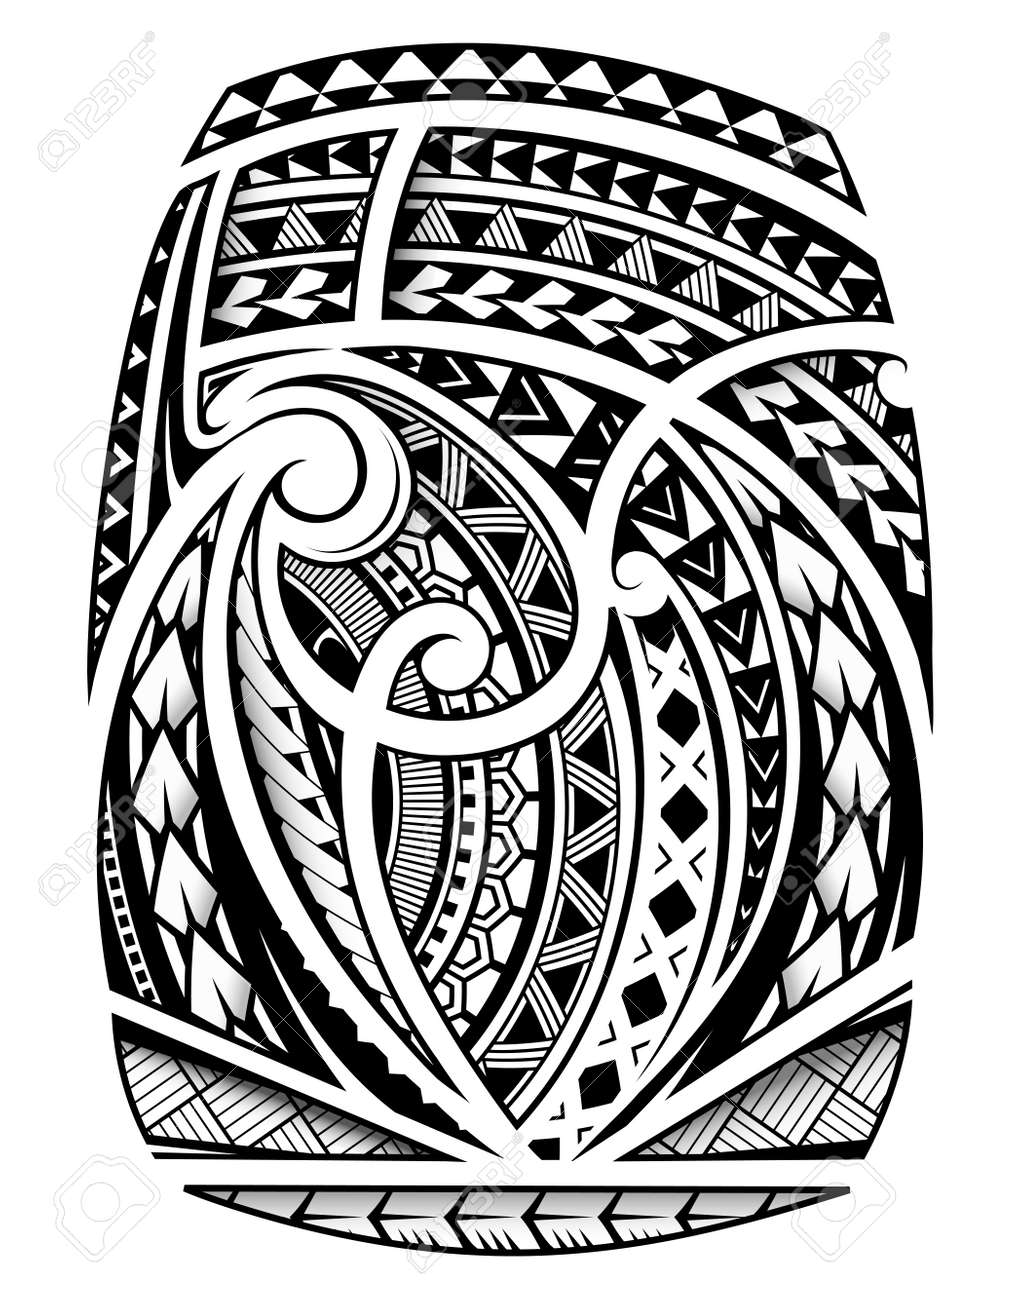 Maori ornament sleeve tattoo including ancient indigenous polynesian style - 122294292